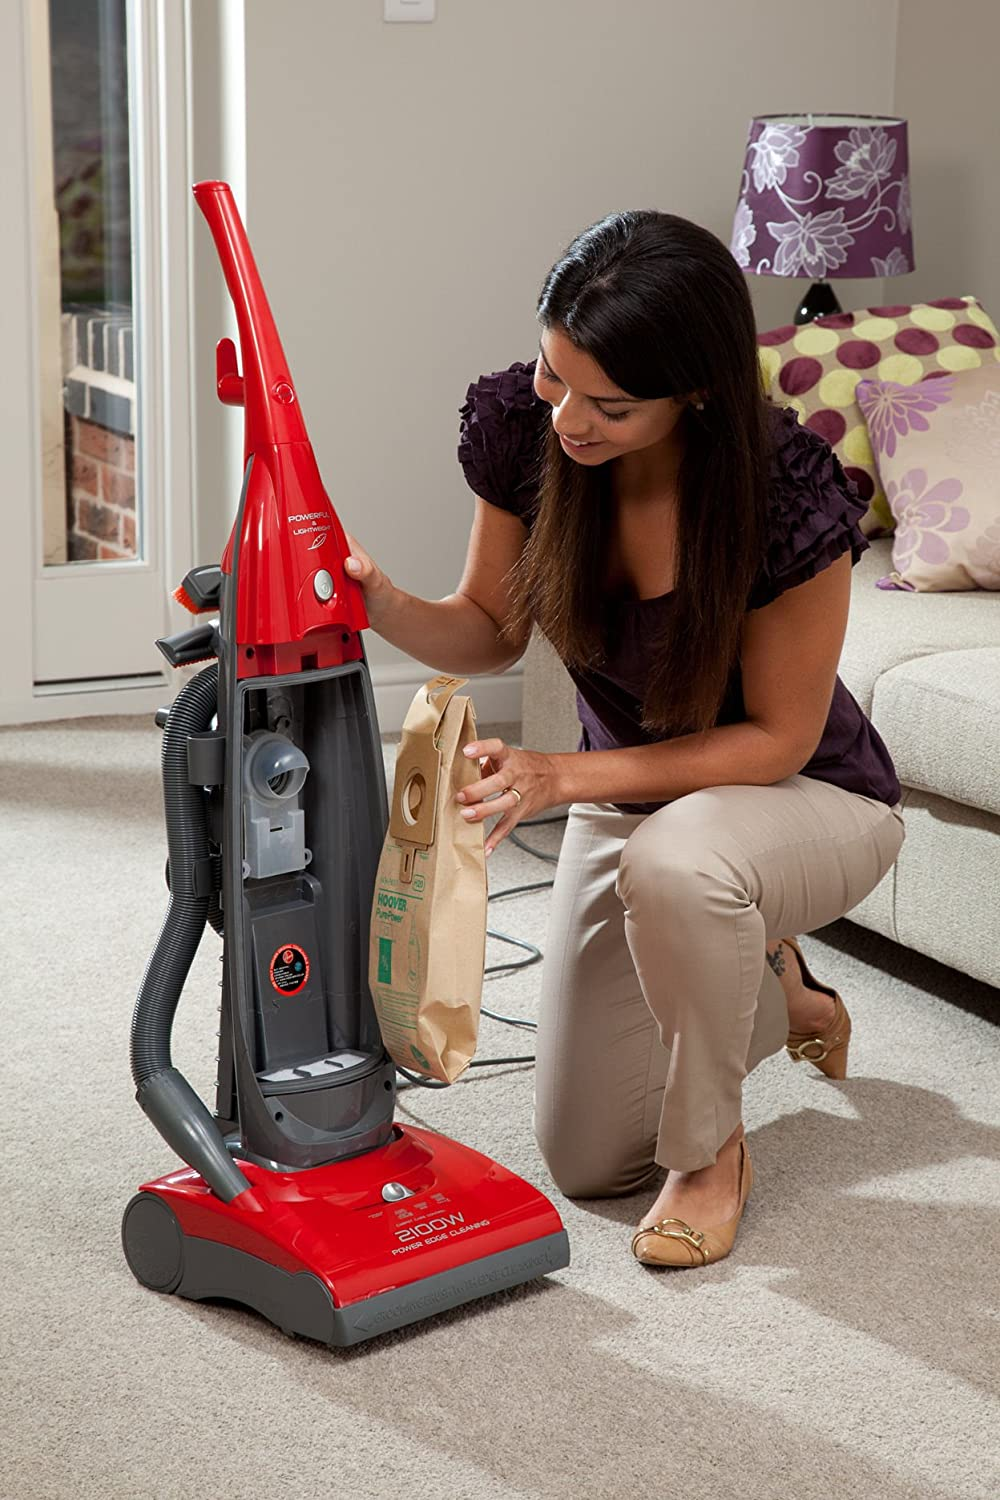 Hoover PurePower PU2110 Bagged Upright Vacuum Cleaner With Micro Filtration, 2100 Watt